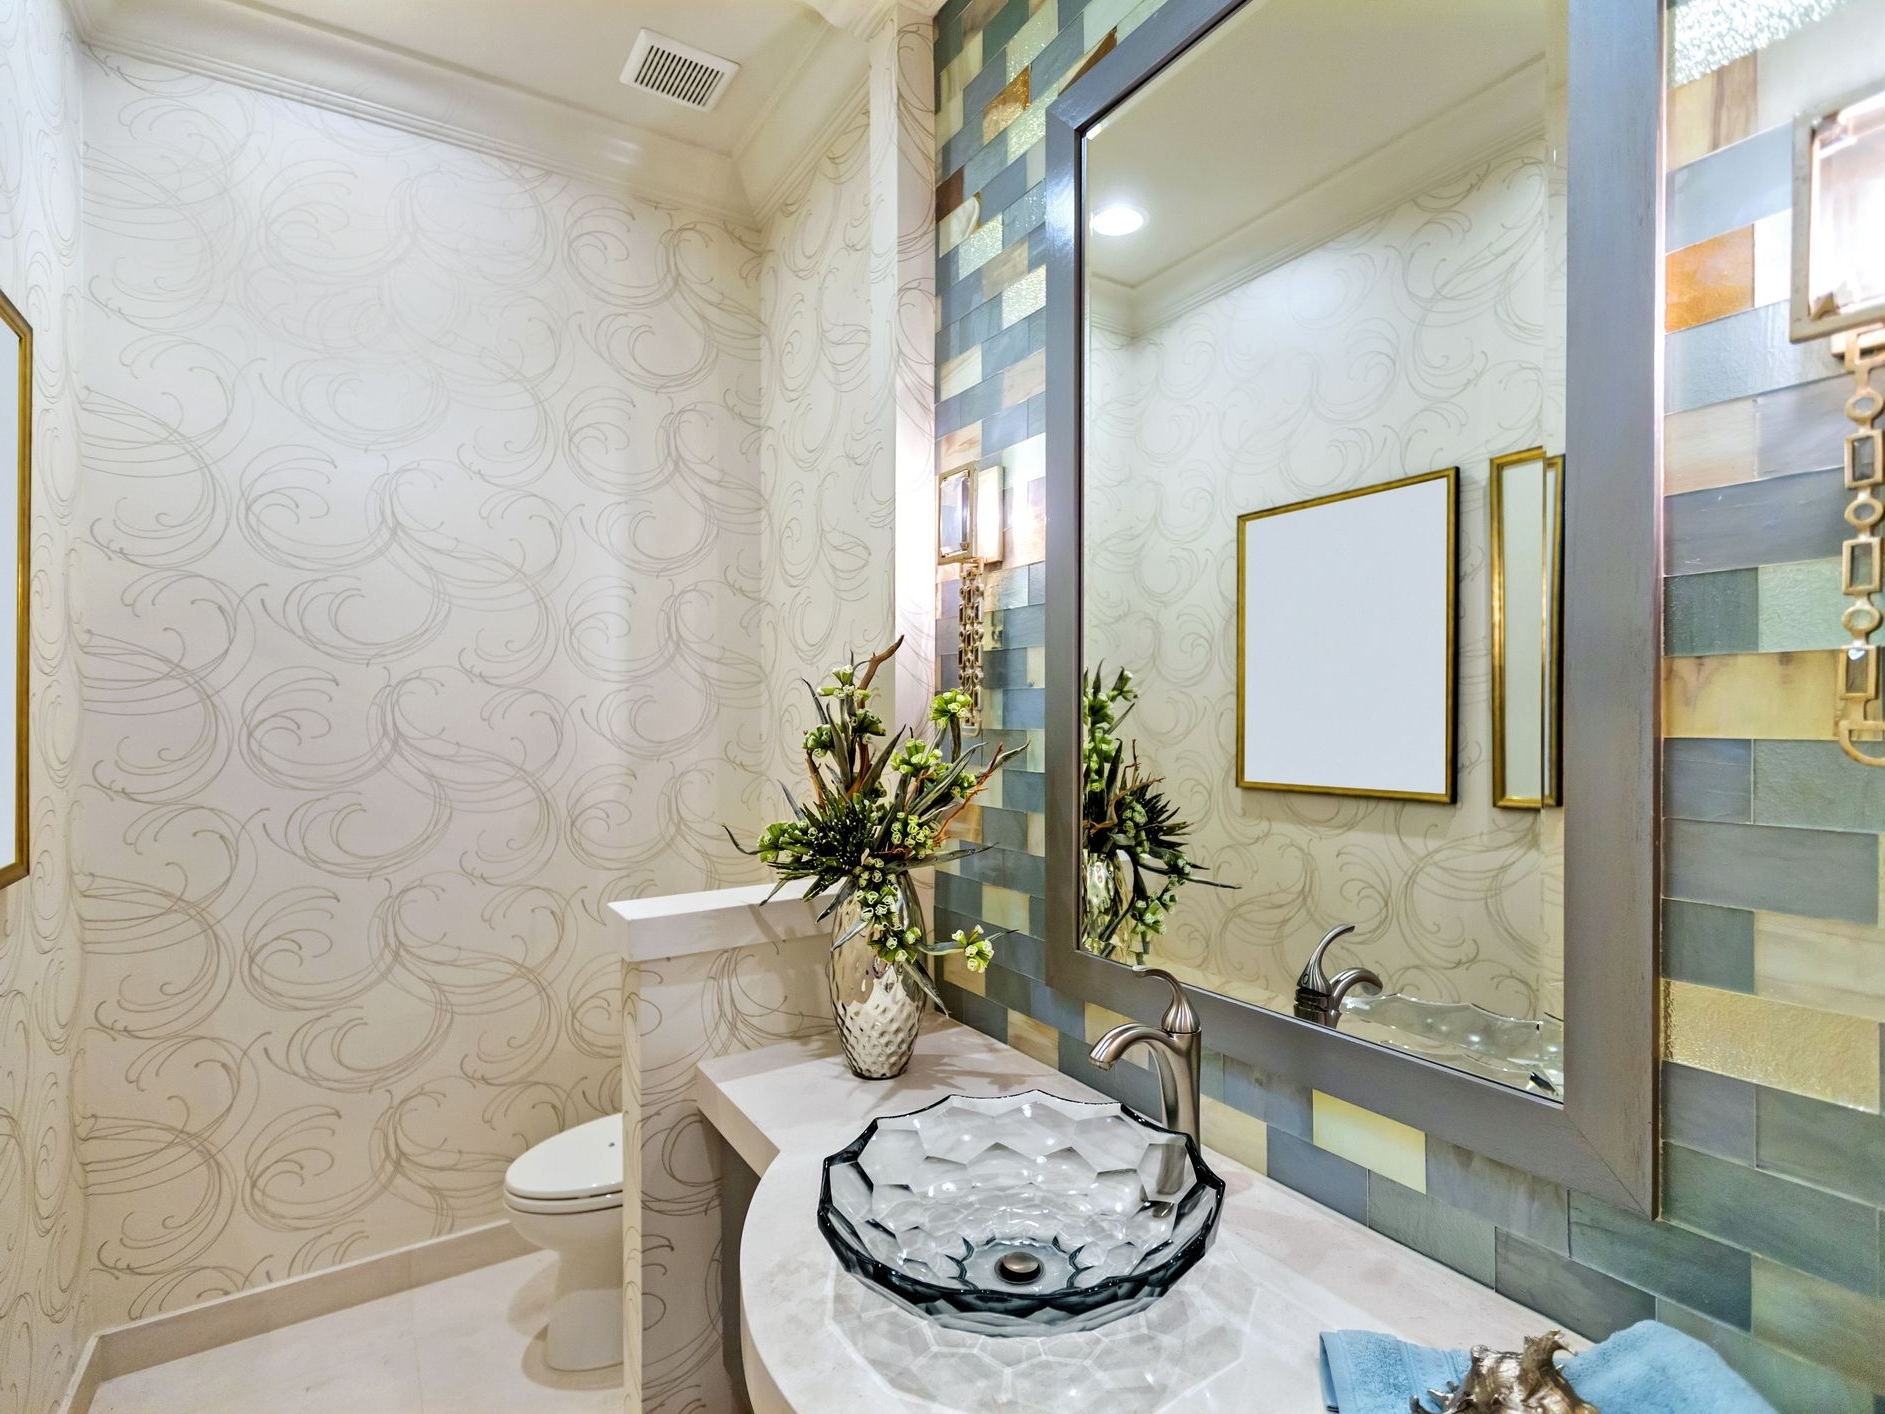 Feng Shui Solutions For Challenging Bathroom Locations 10+ Feng Shui Small Bathroom Ideas